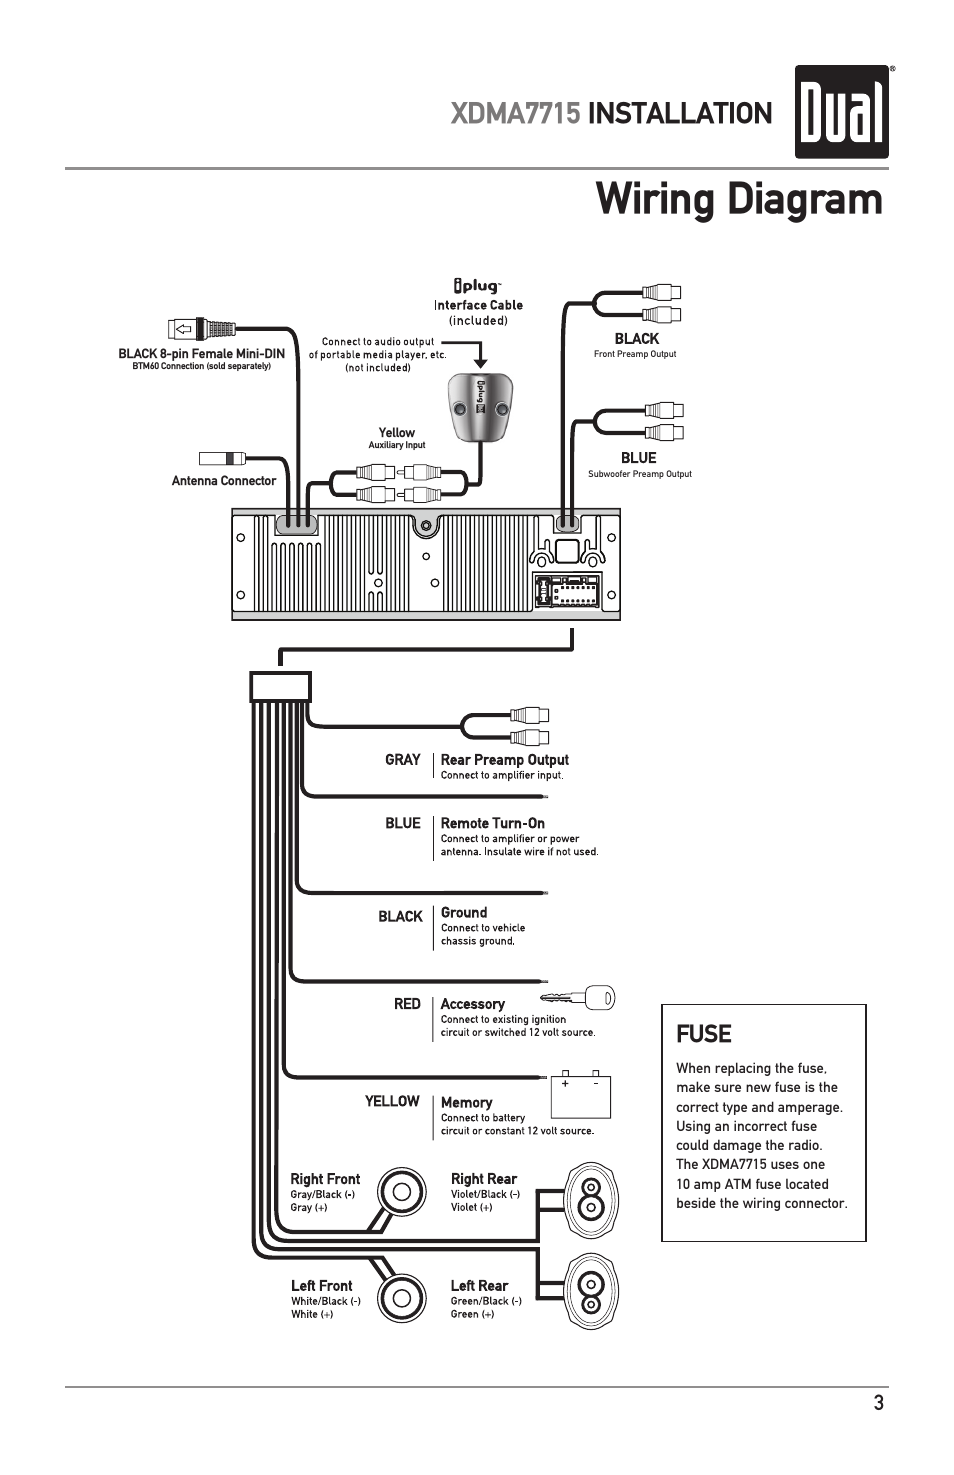 Dual Xd1225 Wiring Harness Diagram